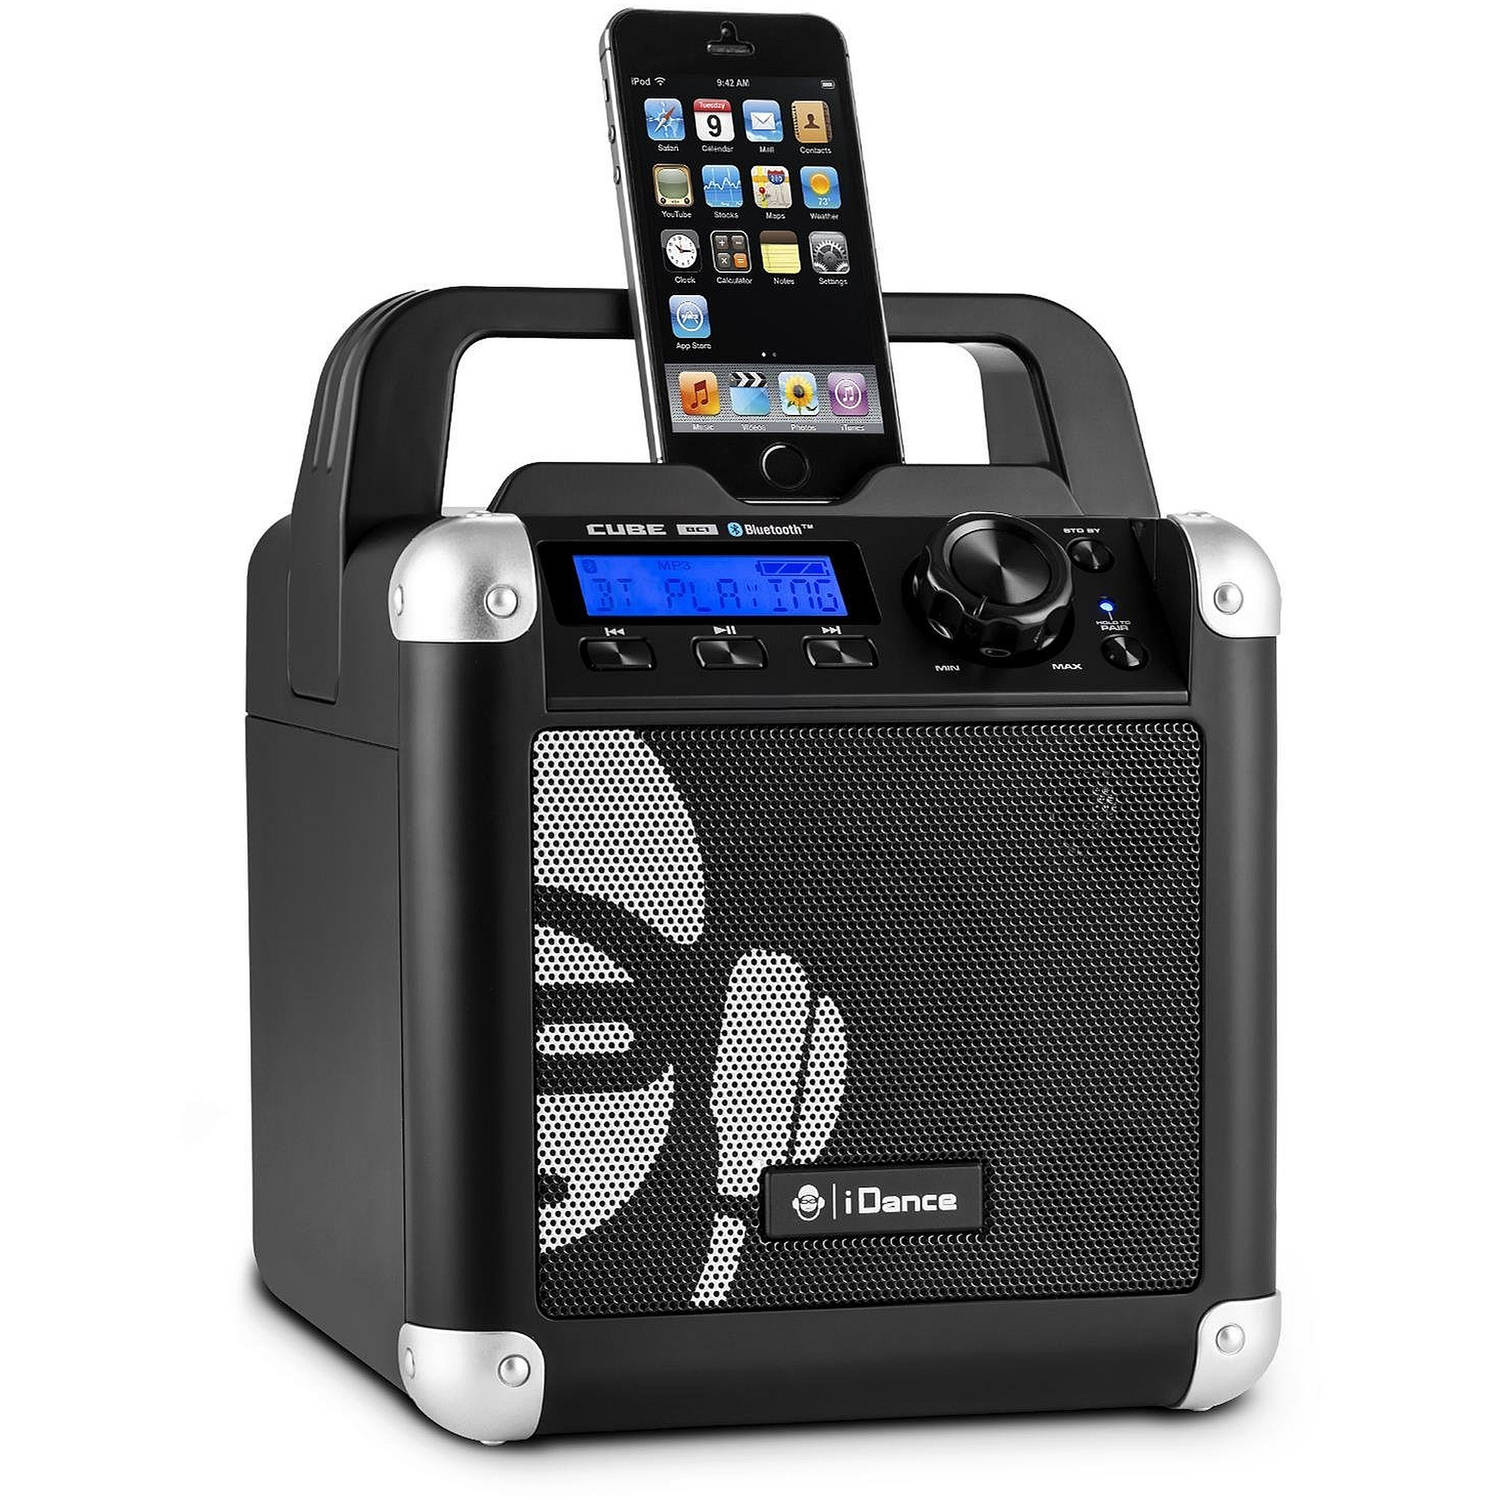 BriteLite iDance 50-Watt Portable Bluetooth Speaker